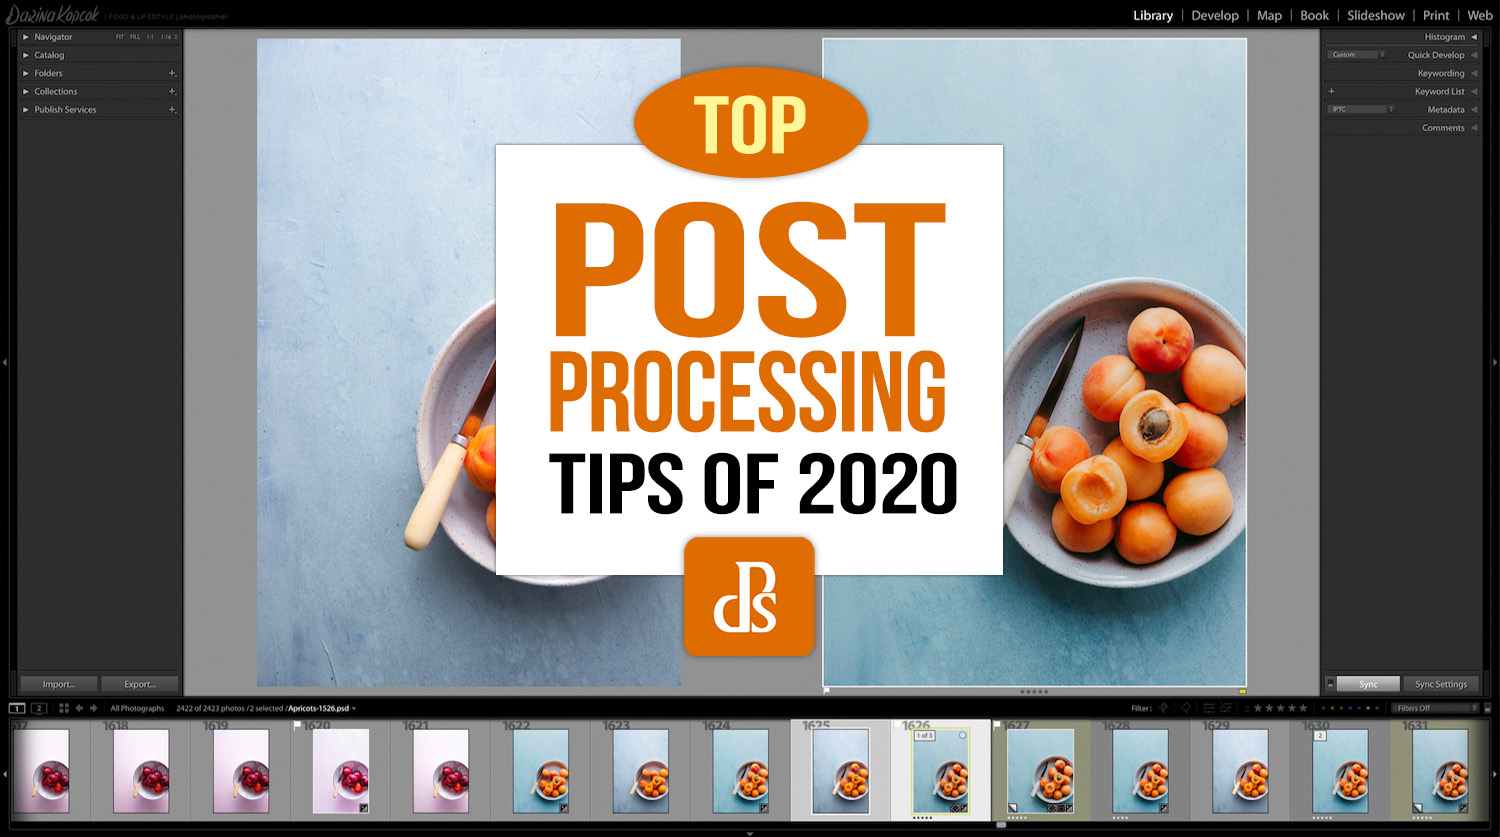 https://i2.wp.com/digital-photography-school.com/wp-content/uploads/2020/12/dps-top-post-processing-photography-tips-2020.jpg?resize=1500%2C837&ssl=1